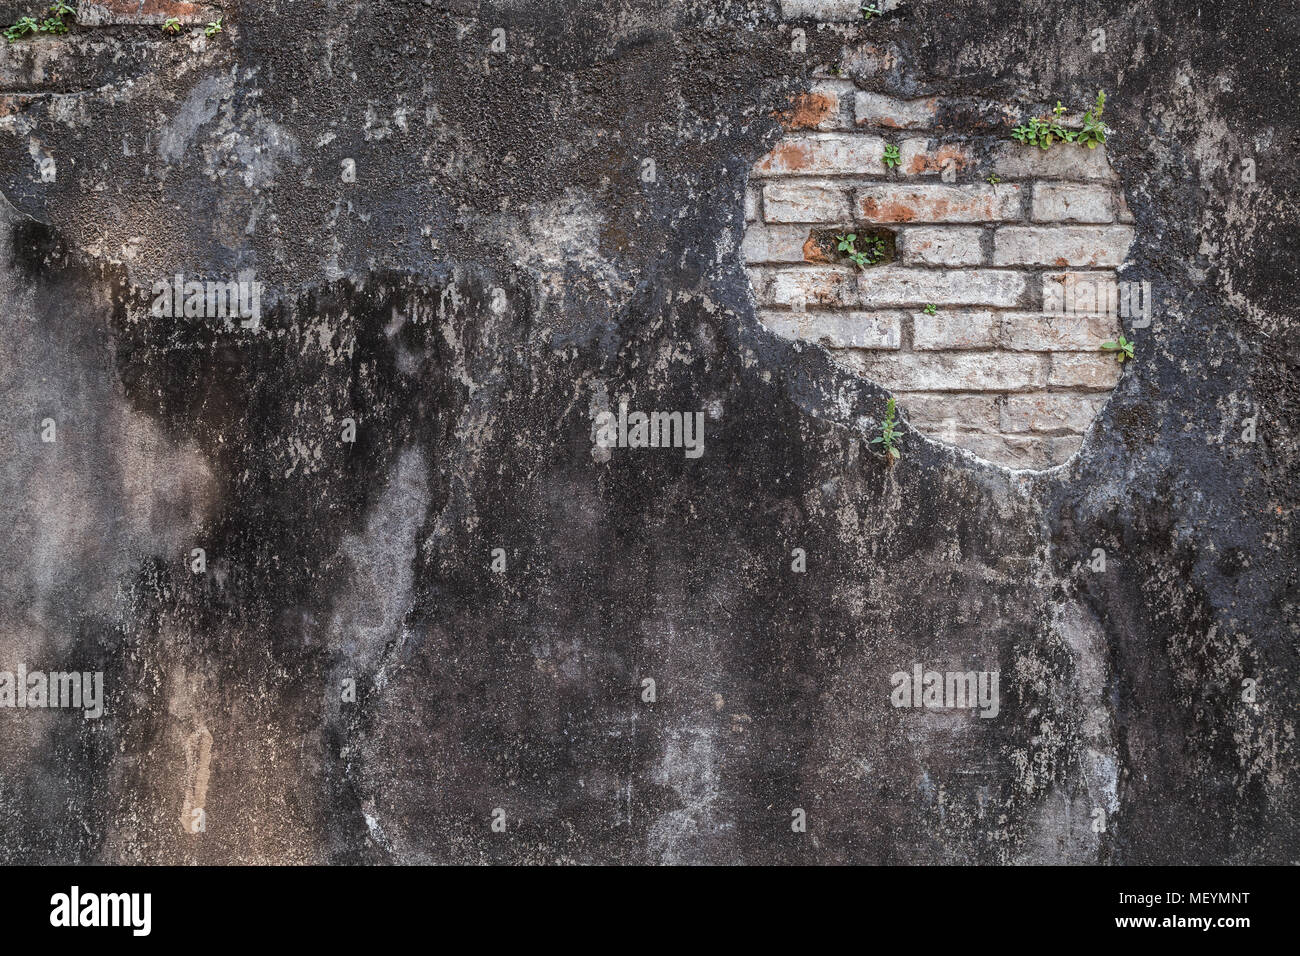 Full frame background of a weathered and damaged dark gray plastered wall. Plaster is partly peeled off revealing old bricks. Stock Photo